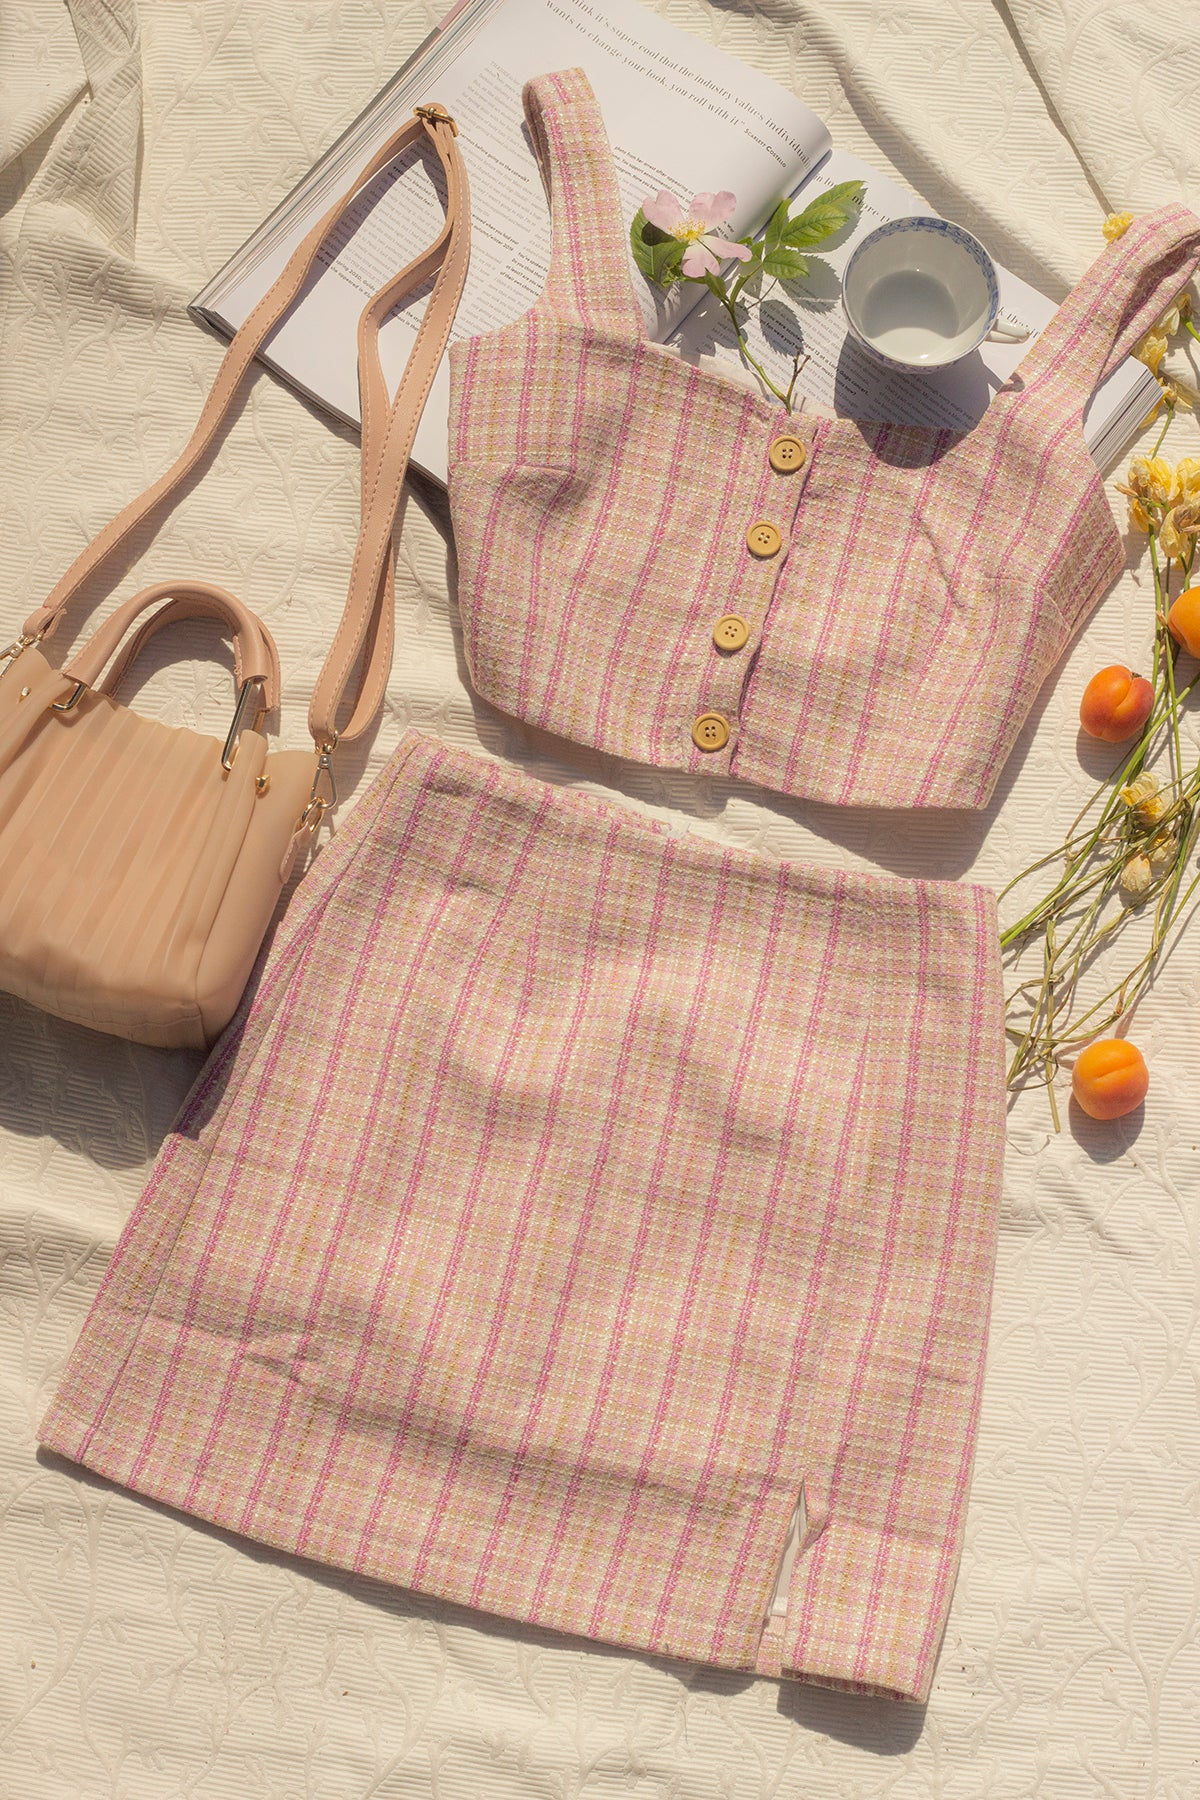 Pink Tweed Crop Top - Sugar + Style